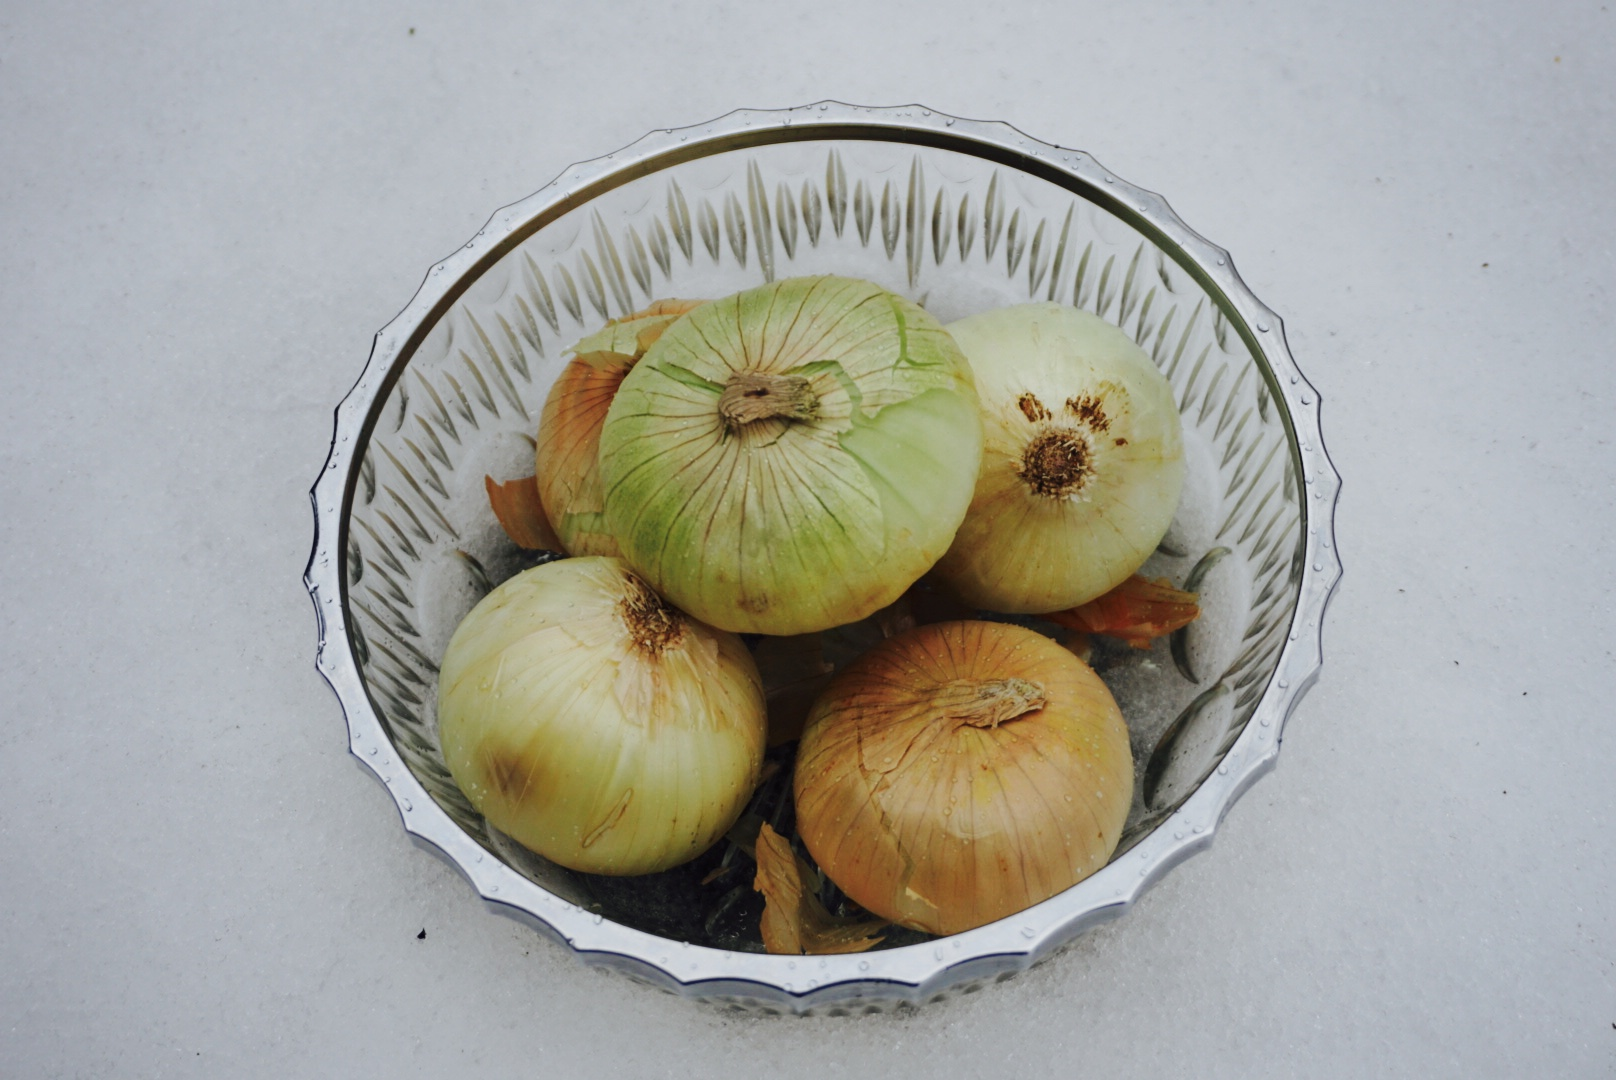 Onions. They are tough to peel, they make you cry, and they taste bad on their own.